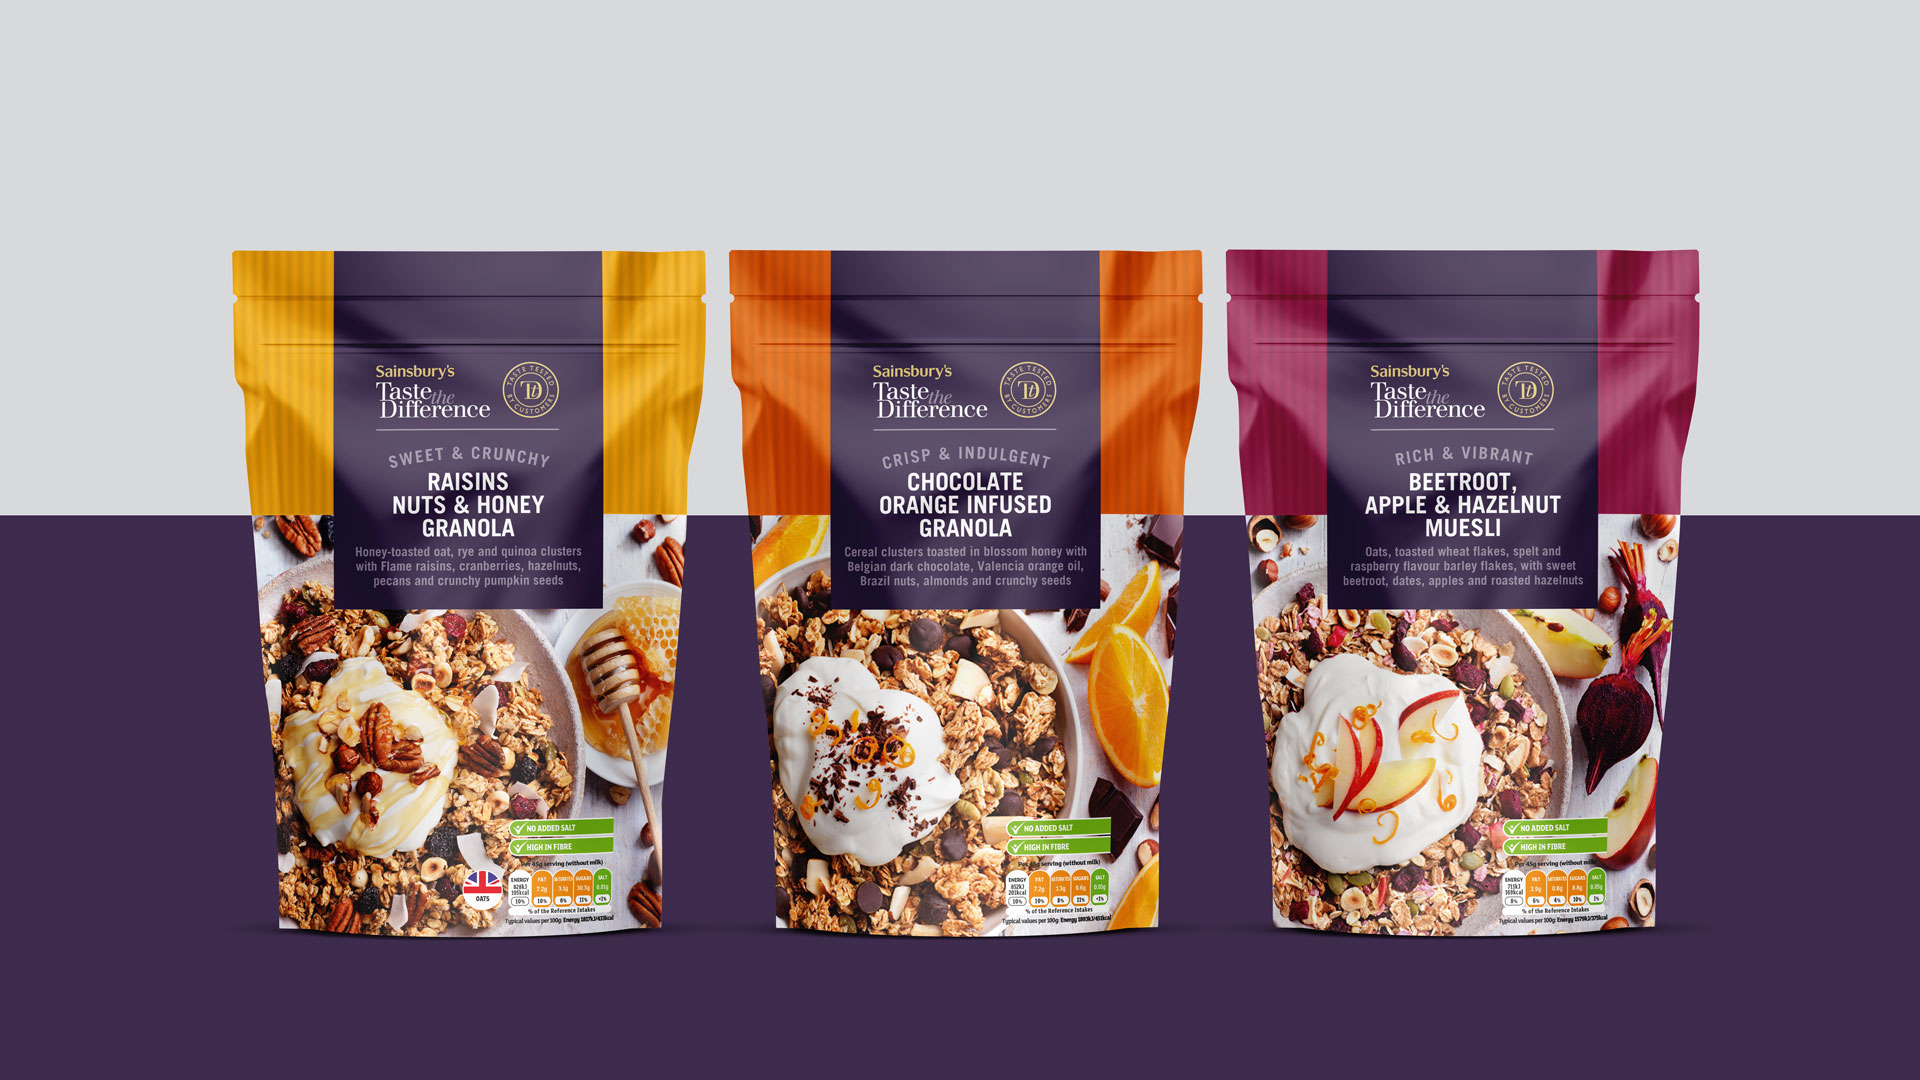 Sainsbury's Taste the Difference Granola & Muesli Packaging